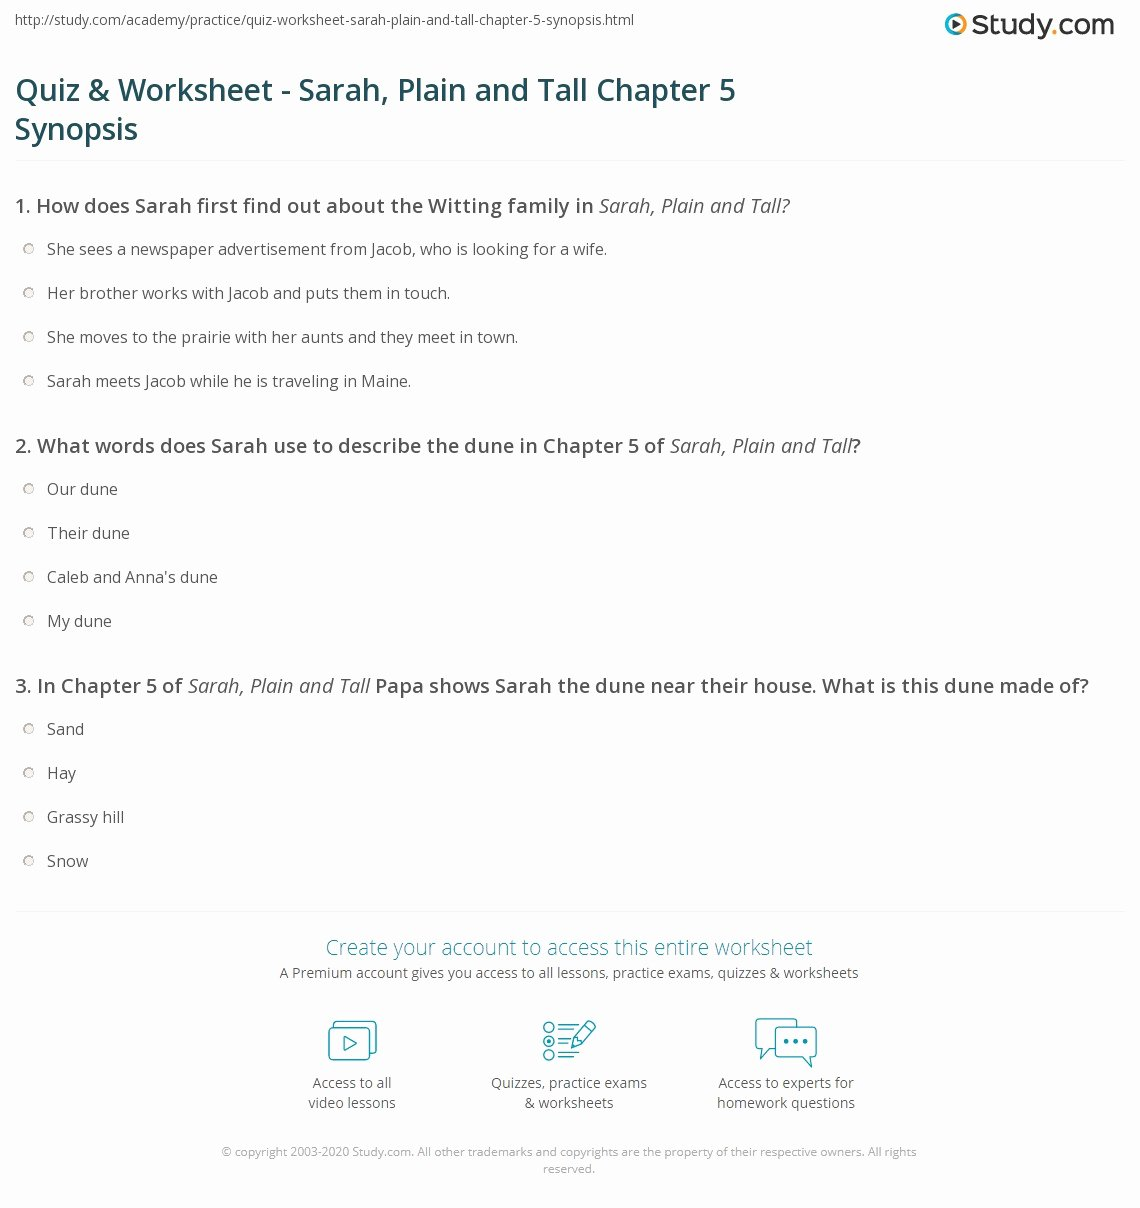 Sarah Plain and Tall Worksheet Ideas Quiz & Worksheet Sarah Plain and Tall Chapter 5 Synopsis